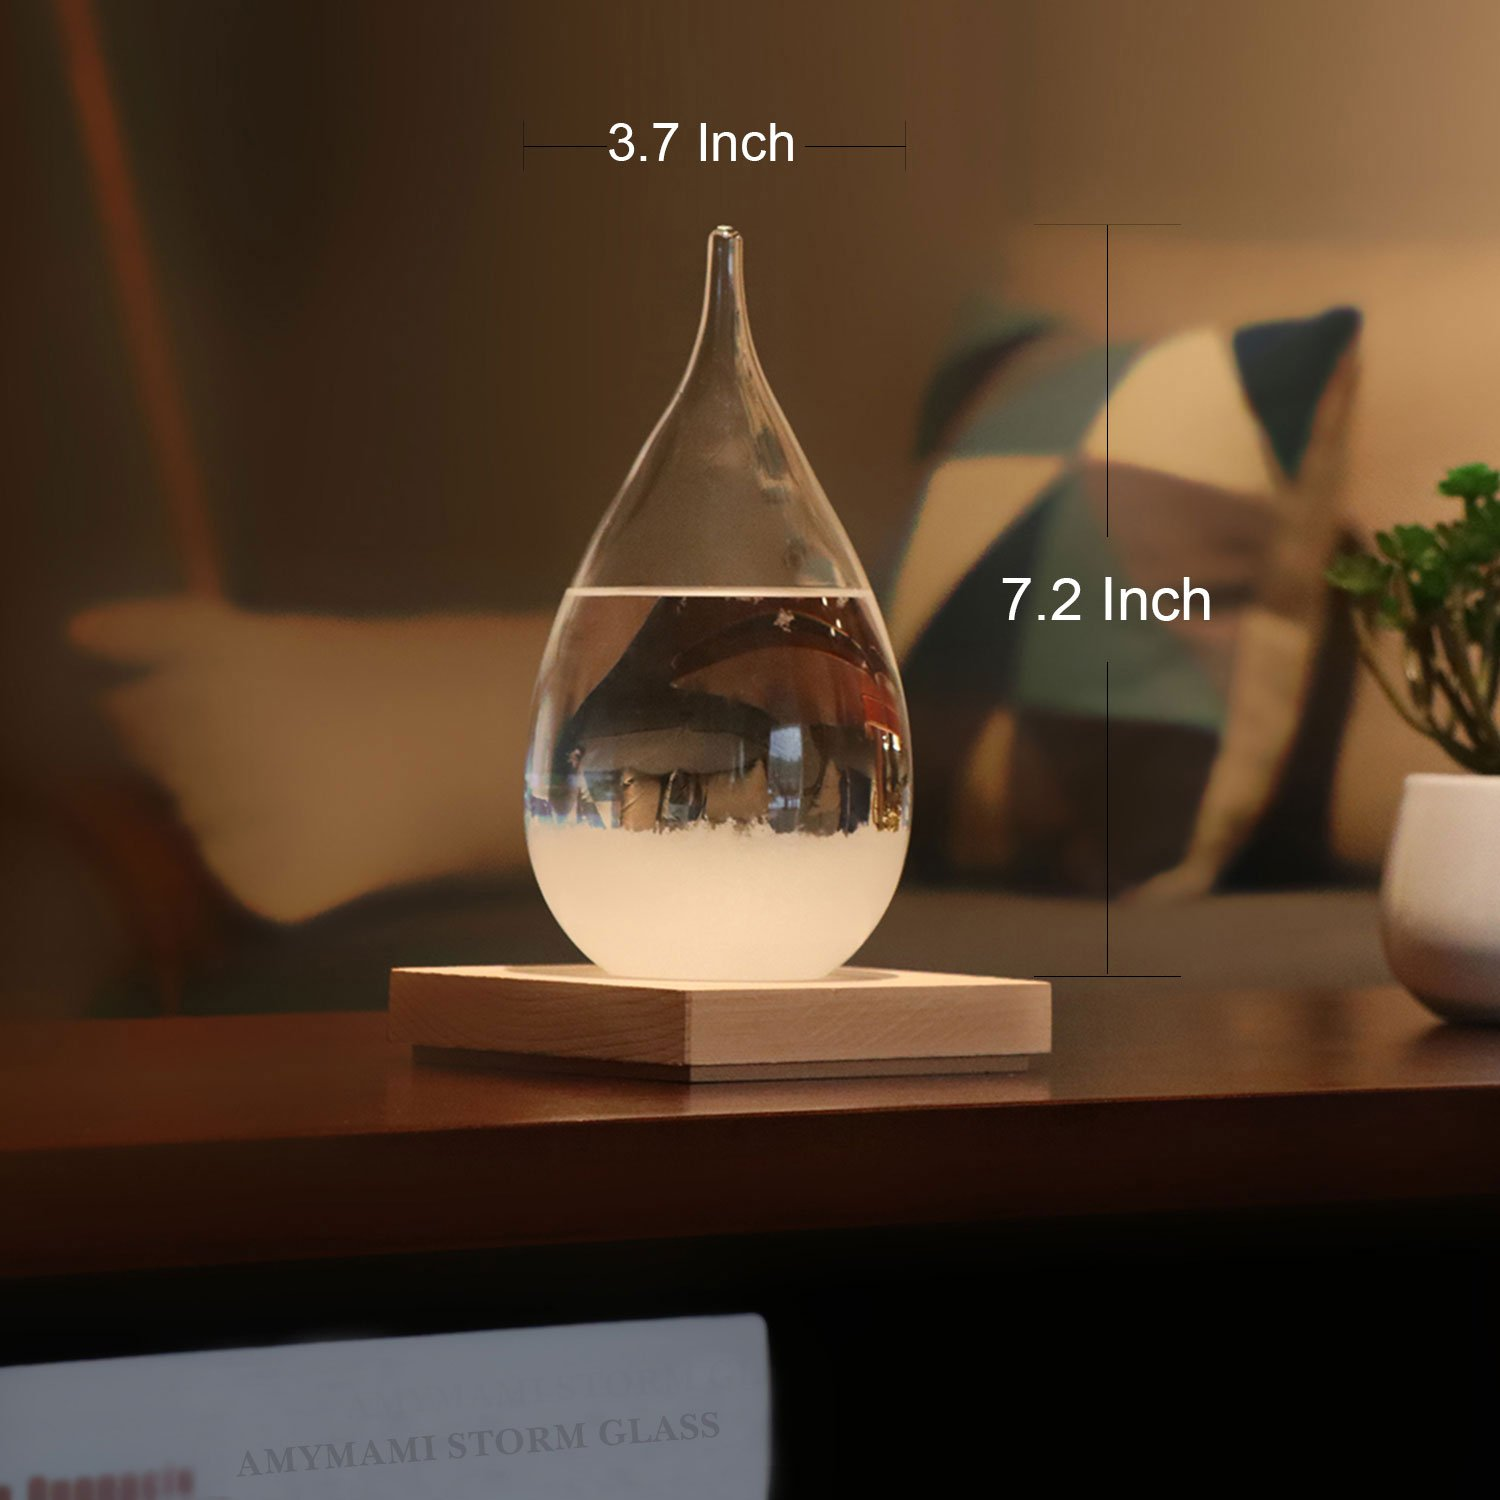 Amymami Storm Glass Weather Predictor, Christmas Decorations Gift,Creative Stylish Weather Station Forecaster Storm Glass Bottles Barometer with Wood Base, 6.8X 3.4X 3.4 inches by Amymami (Image #6)